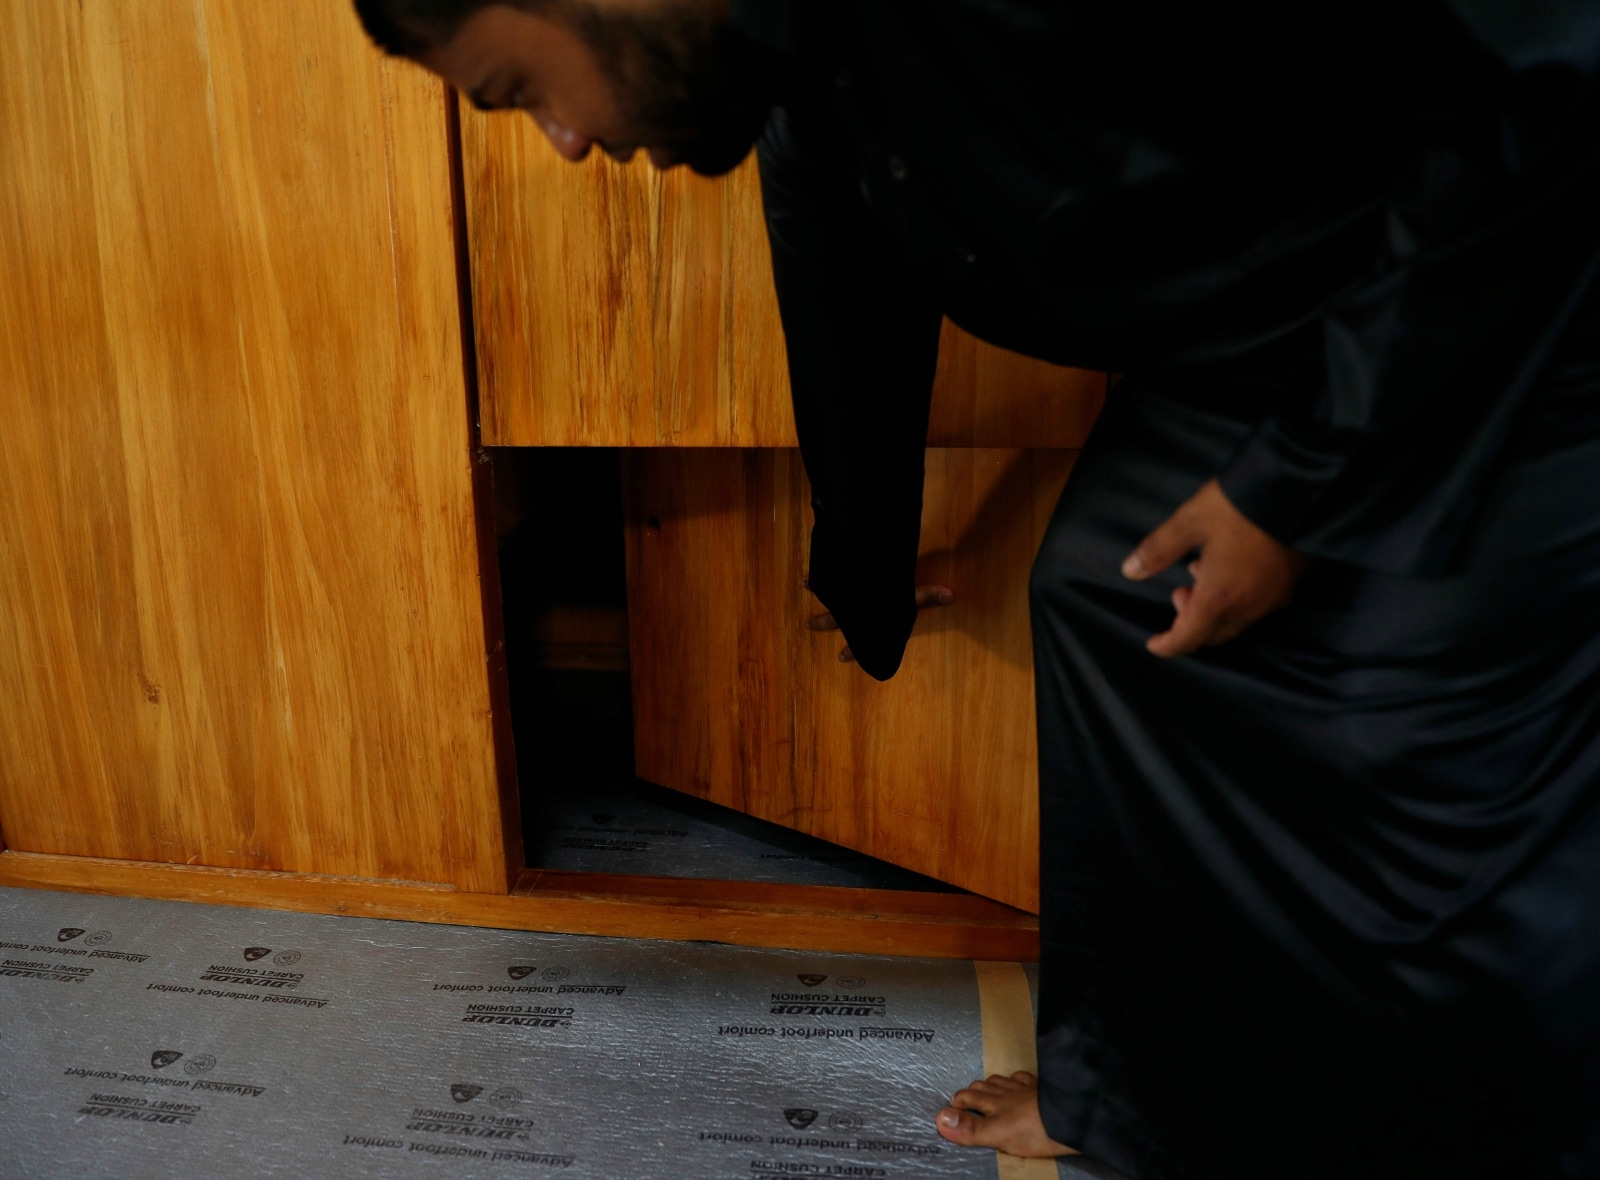 Mohammed Israfil Hossain, a muazzin from Bangladesh, shows an opening in the pulpit where a three-year-old boy hid during the shootings at Al Noor mosque where more than 40 people were killed by a suspected white supremacist during Friday prayers on March 15 in Christchurch, New Zealand April 1, 2019. REUTERS/Edgar Su